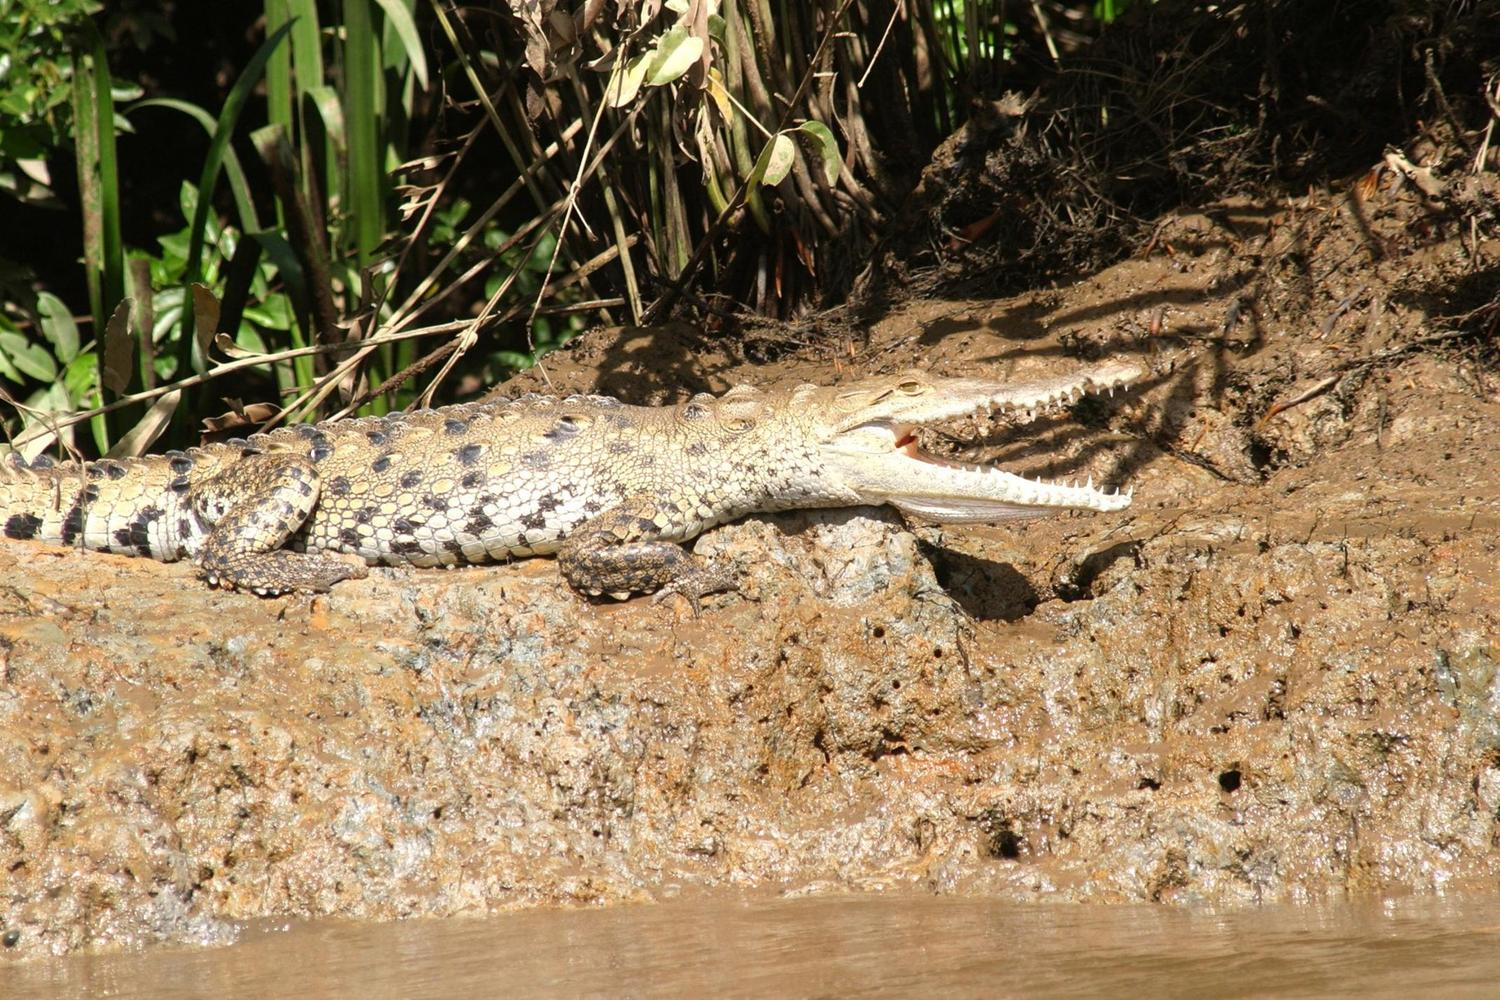 Caiman by the shore of Corcovado National Park